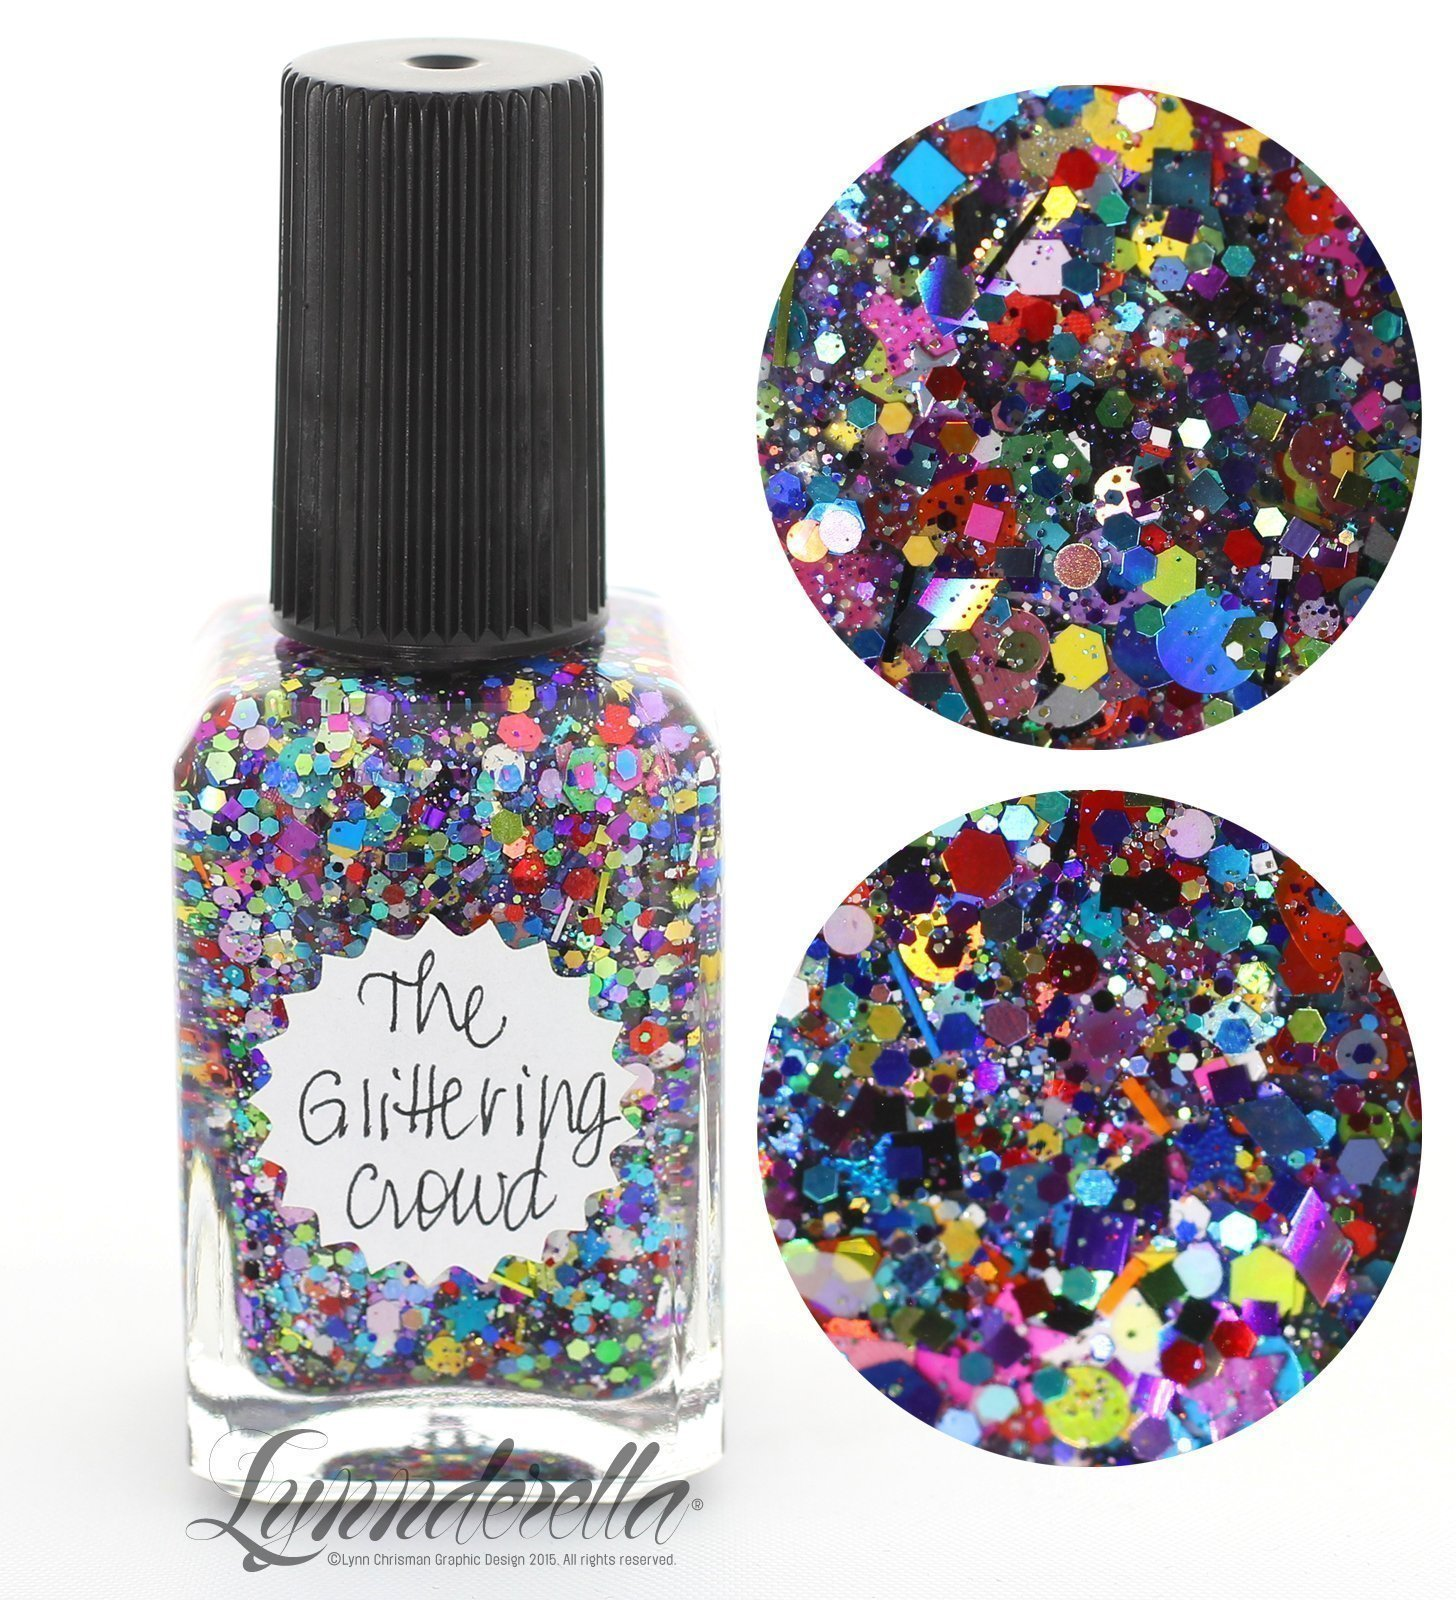 Lynnderella Multi Glitter Multi Color Nail Polish—The Glittering Crowd